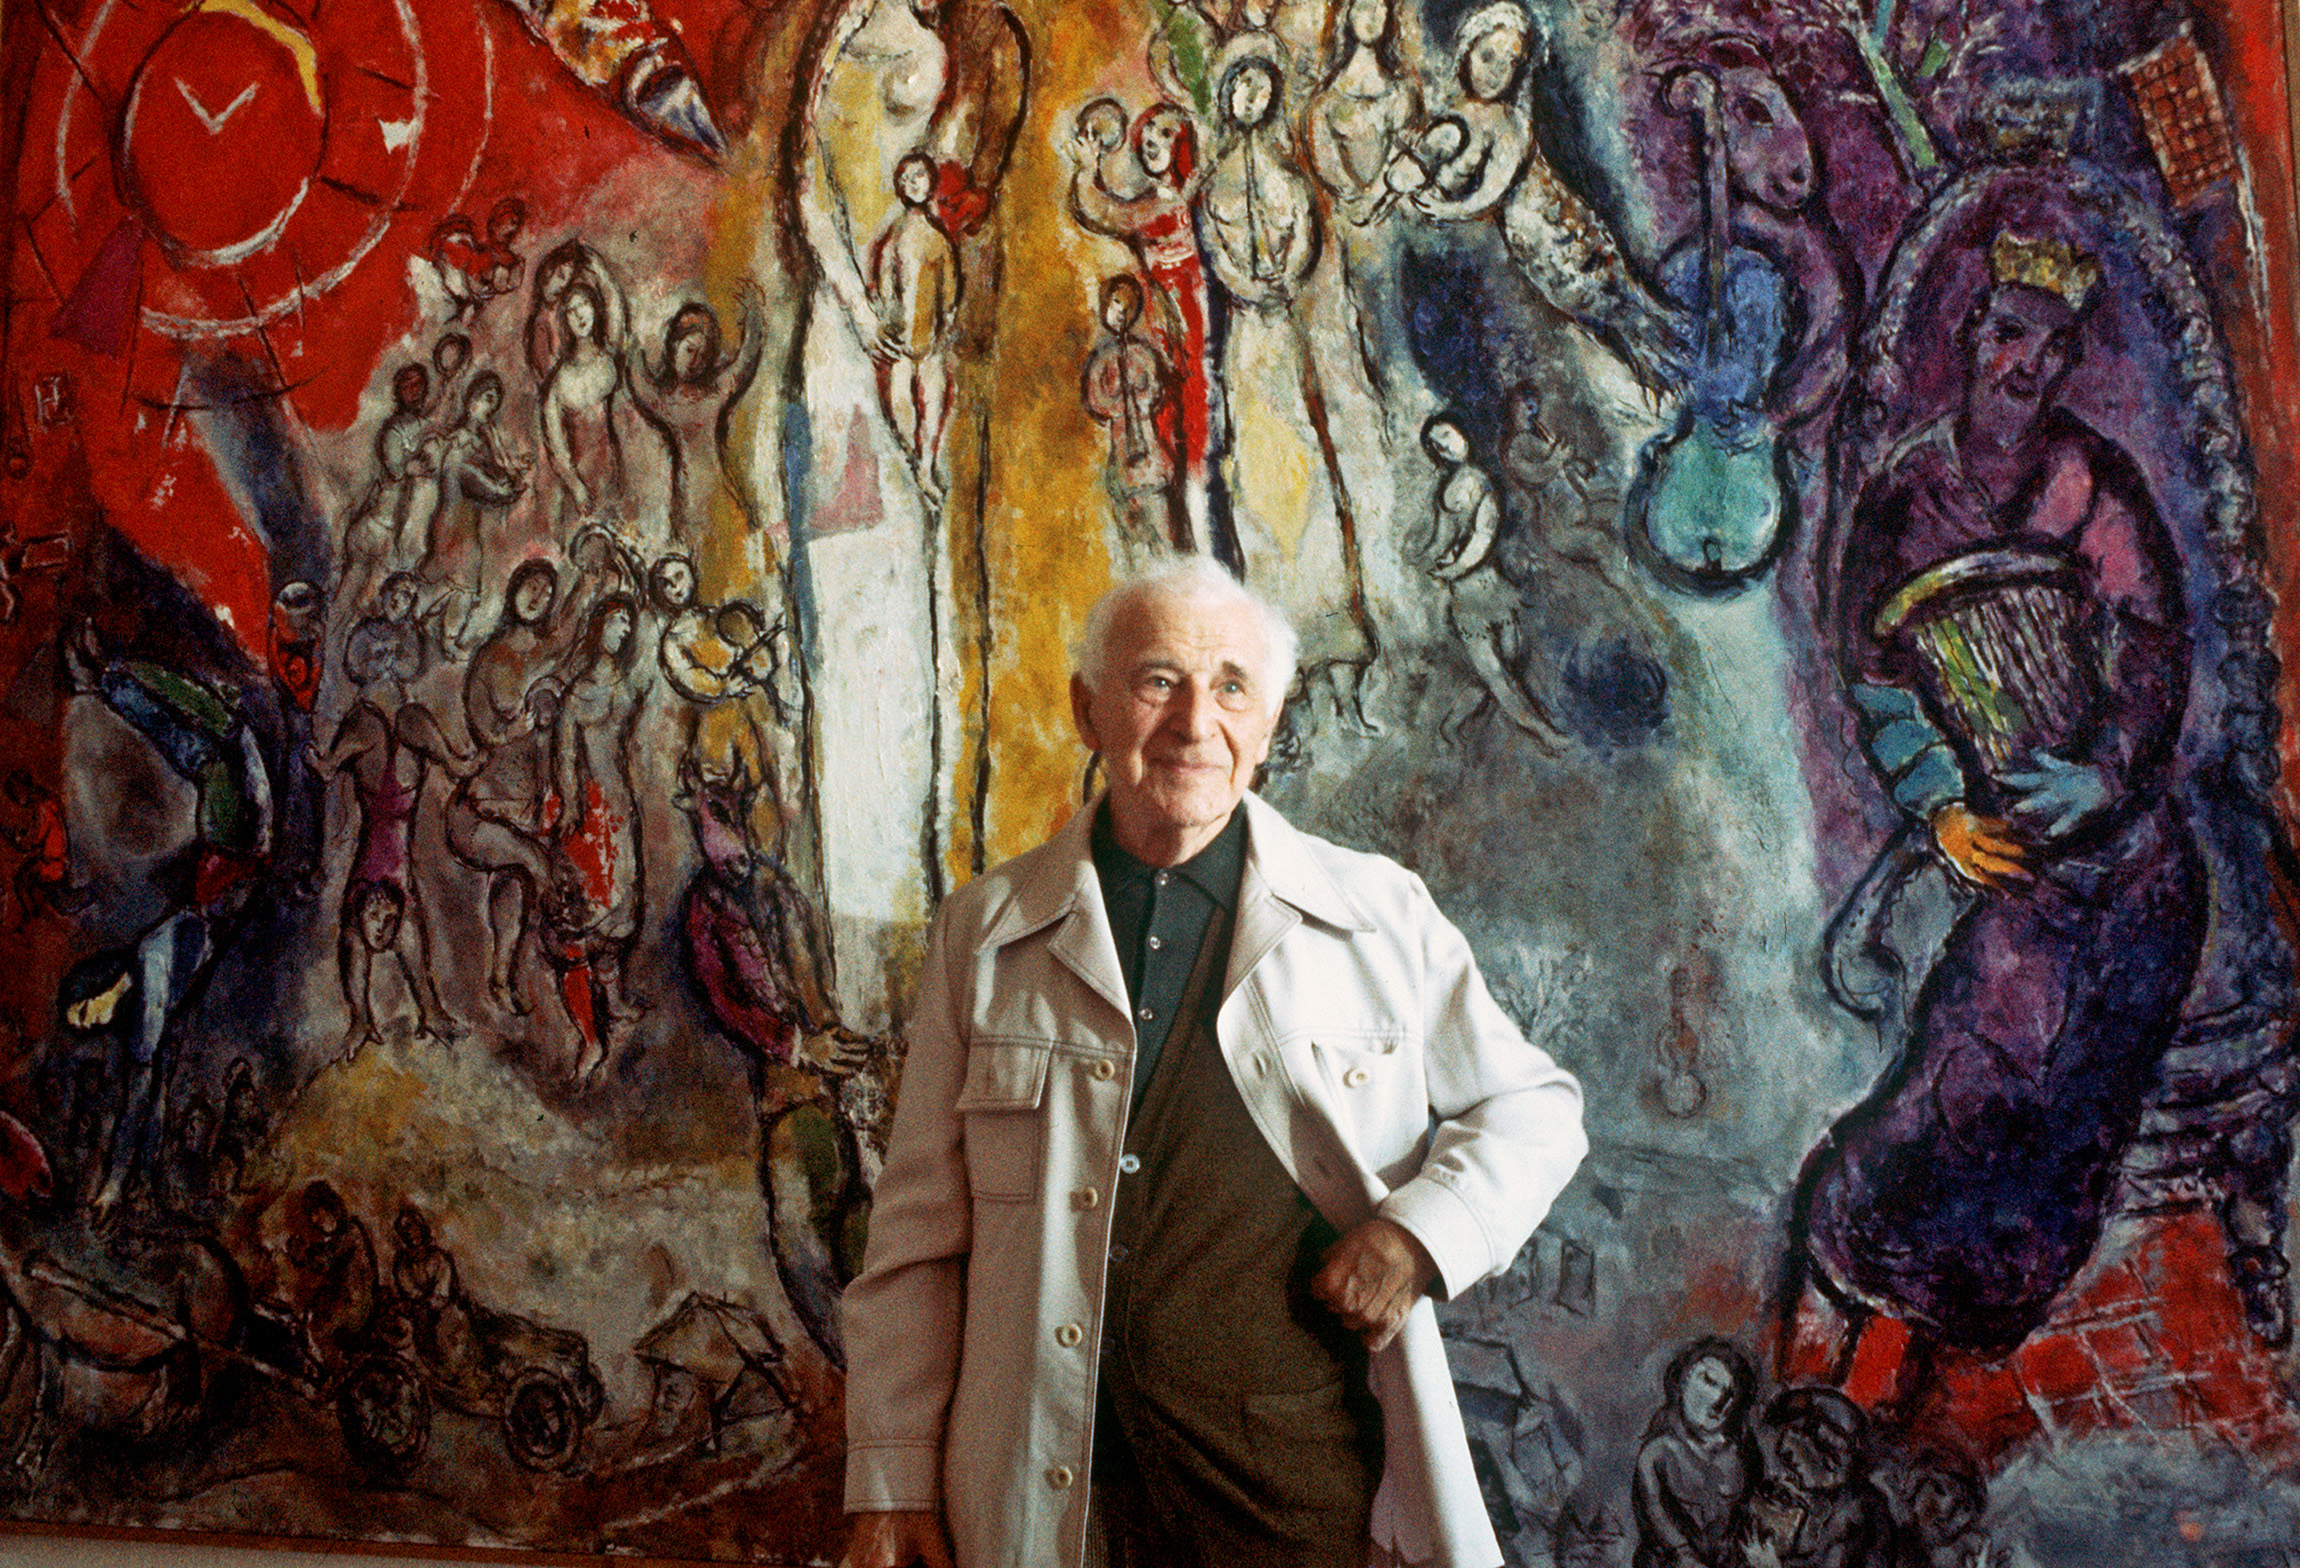 famous painter Marc Chagall, born in Vitebsk, Belarus, poses 02 July 1977 in front of one of his works, inspired with 25 others by Old and New Testament and gathered in Nice for an exhibition in honour of his 90th anniversary. He began to design ballet sets and costumes, illustrated several books, but is best known for his fanciful painting of animals, objects and people of his life, dreams and Russian folklore. / AFP PHOTO / STAFF